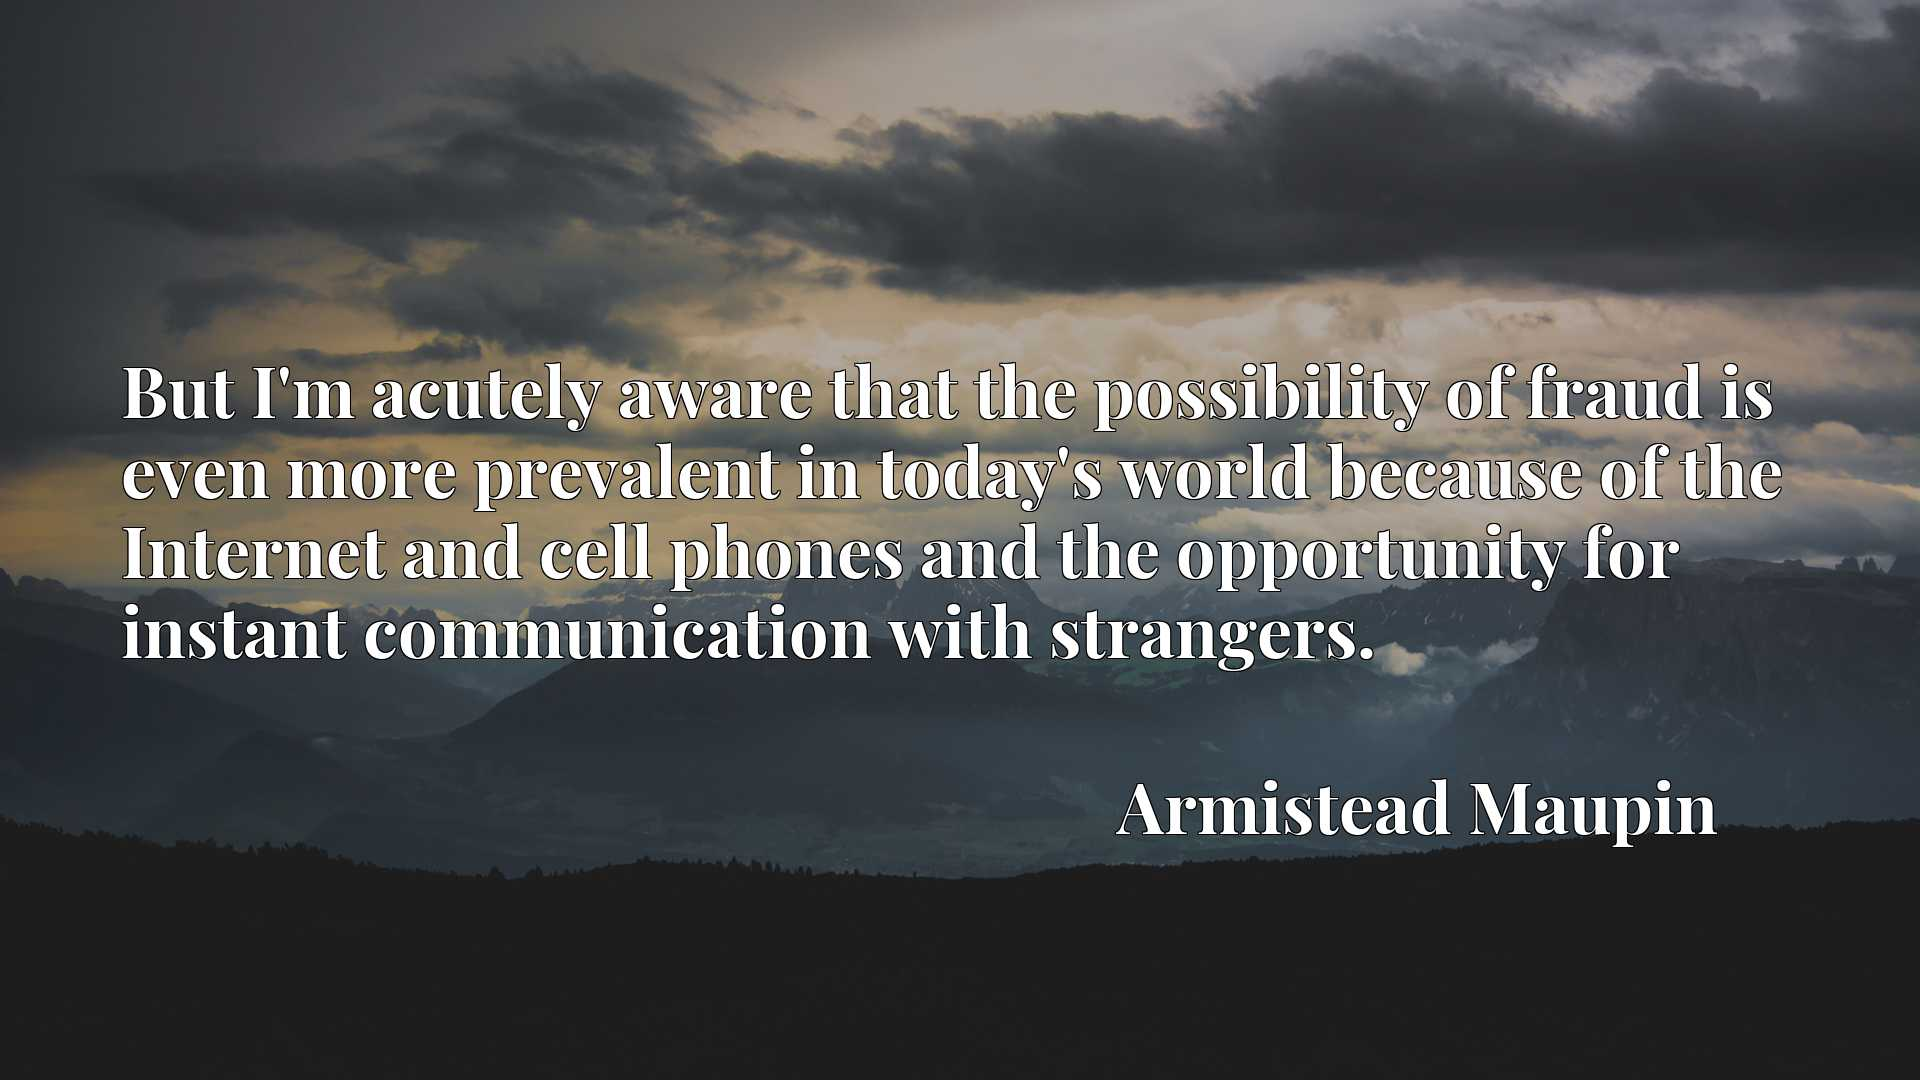 But I'm acutely aware that the possibility of fraud is even more prevalent in today's world because of the Internet and cell phones and the opportunity for instant communication with strangers.